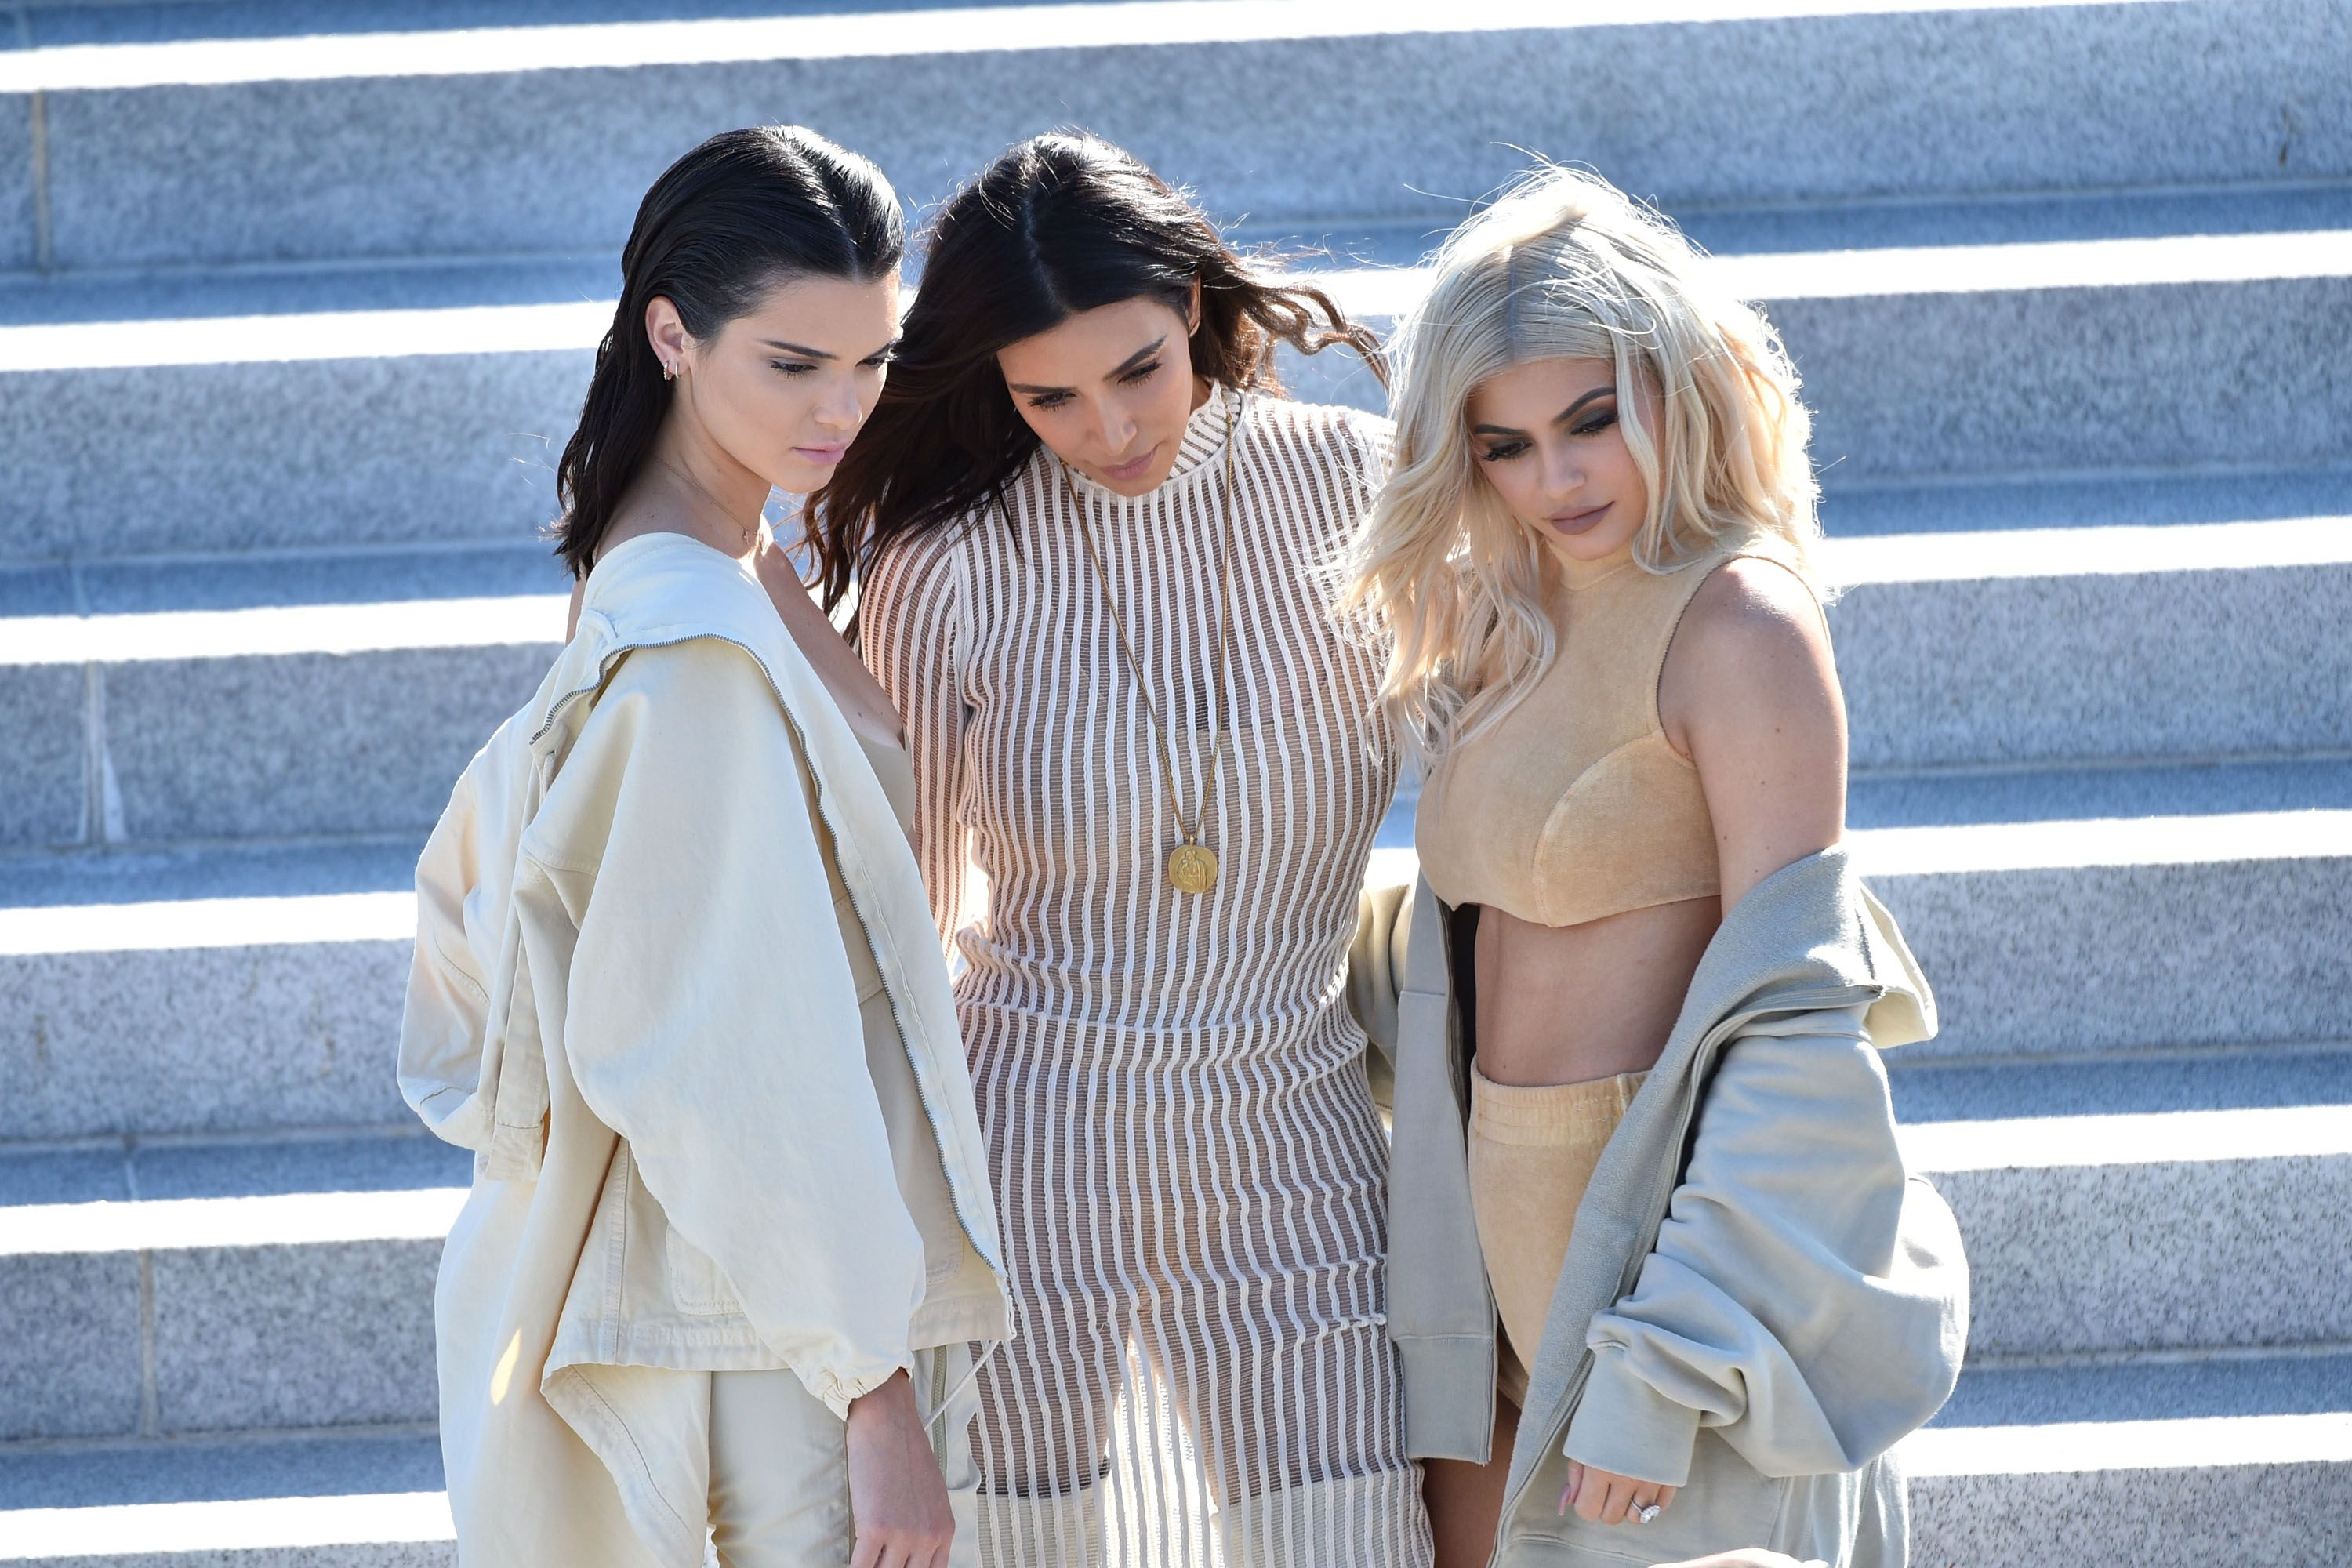 Kendall Jenner Explains Why She Felt Like She 'Didn't Fit In' With Kylie, Kim, Khloé, and Kourtney Kardashian